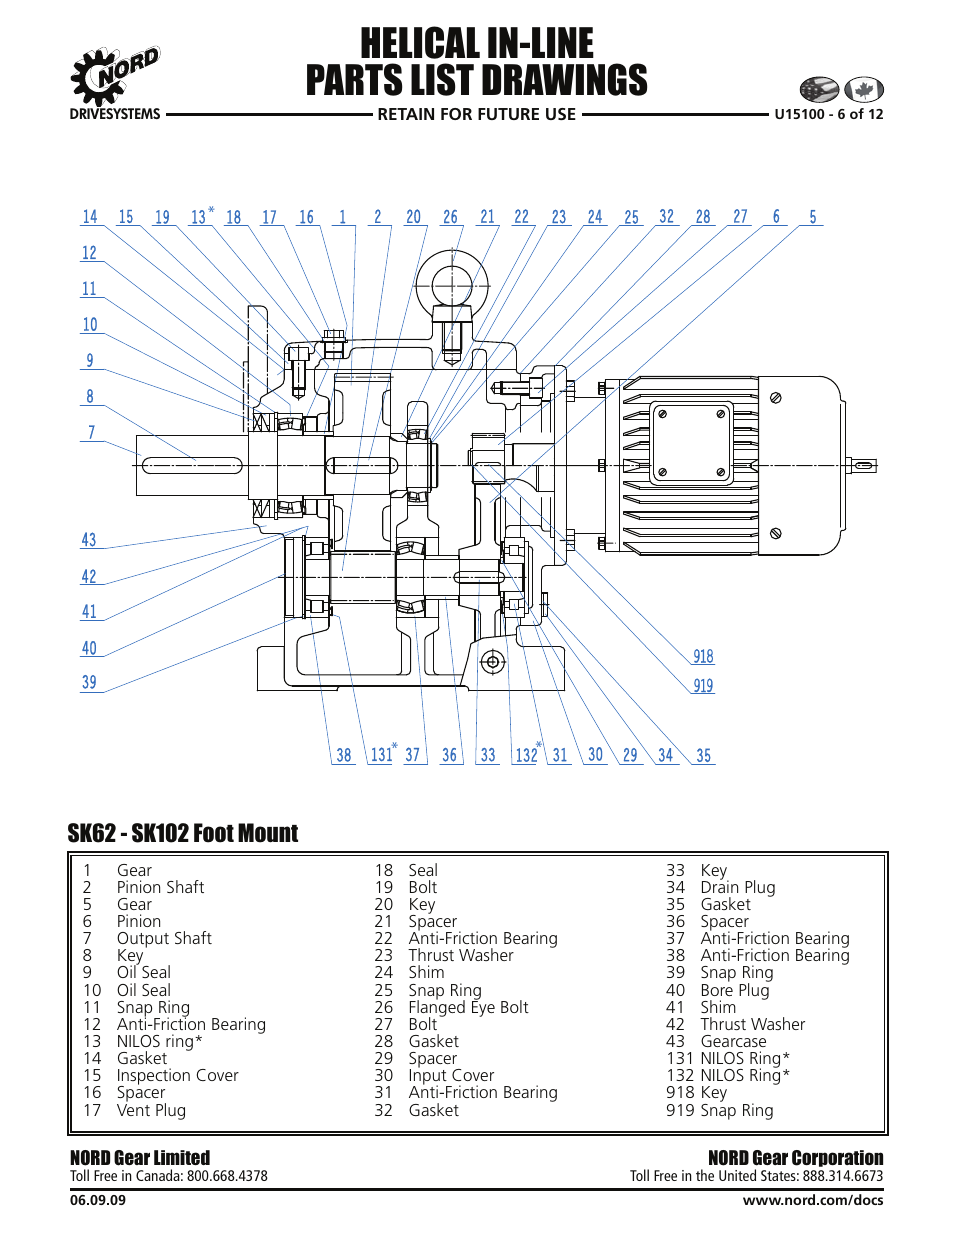 Helical in-line parts list drawings | Viking Pump NORD TSM For